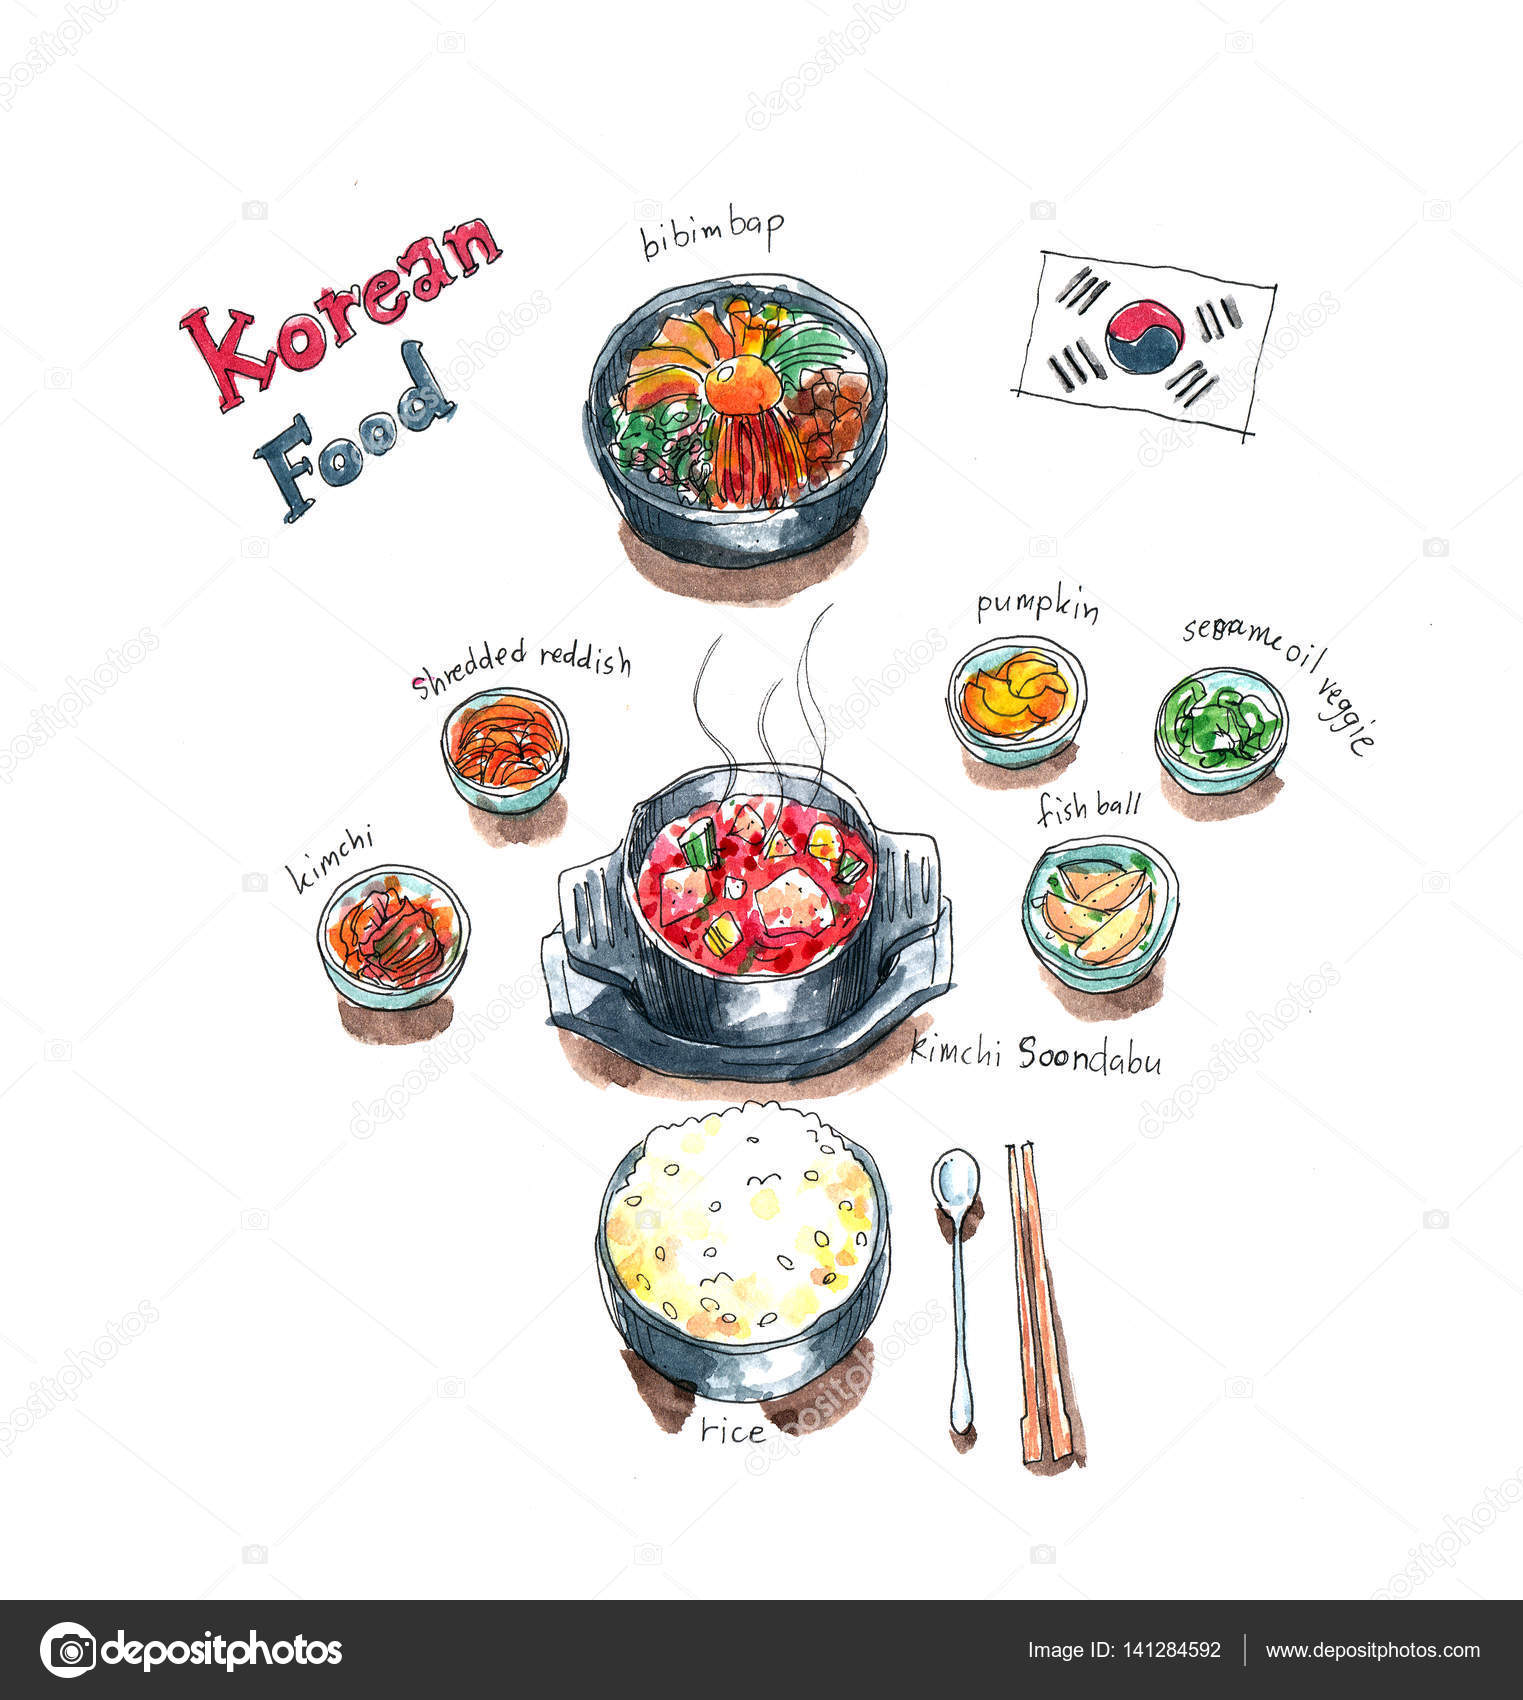 Korean Food Watercolor Korean Food Set Doodle Kimchi Soup Bibimbap And Side Dishes Watercolor Painting Stock Photo C Glowonconcept 141284592